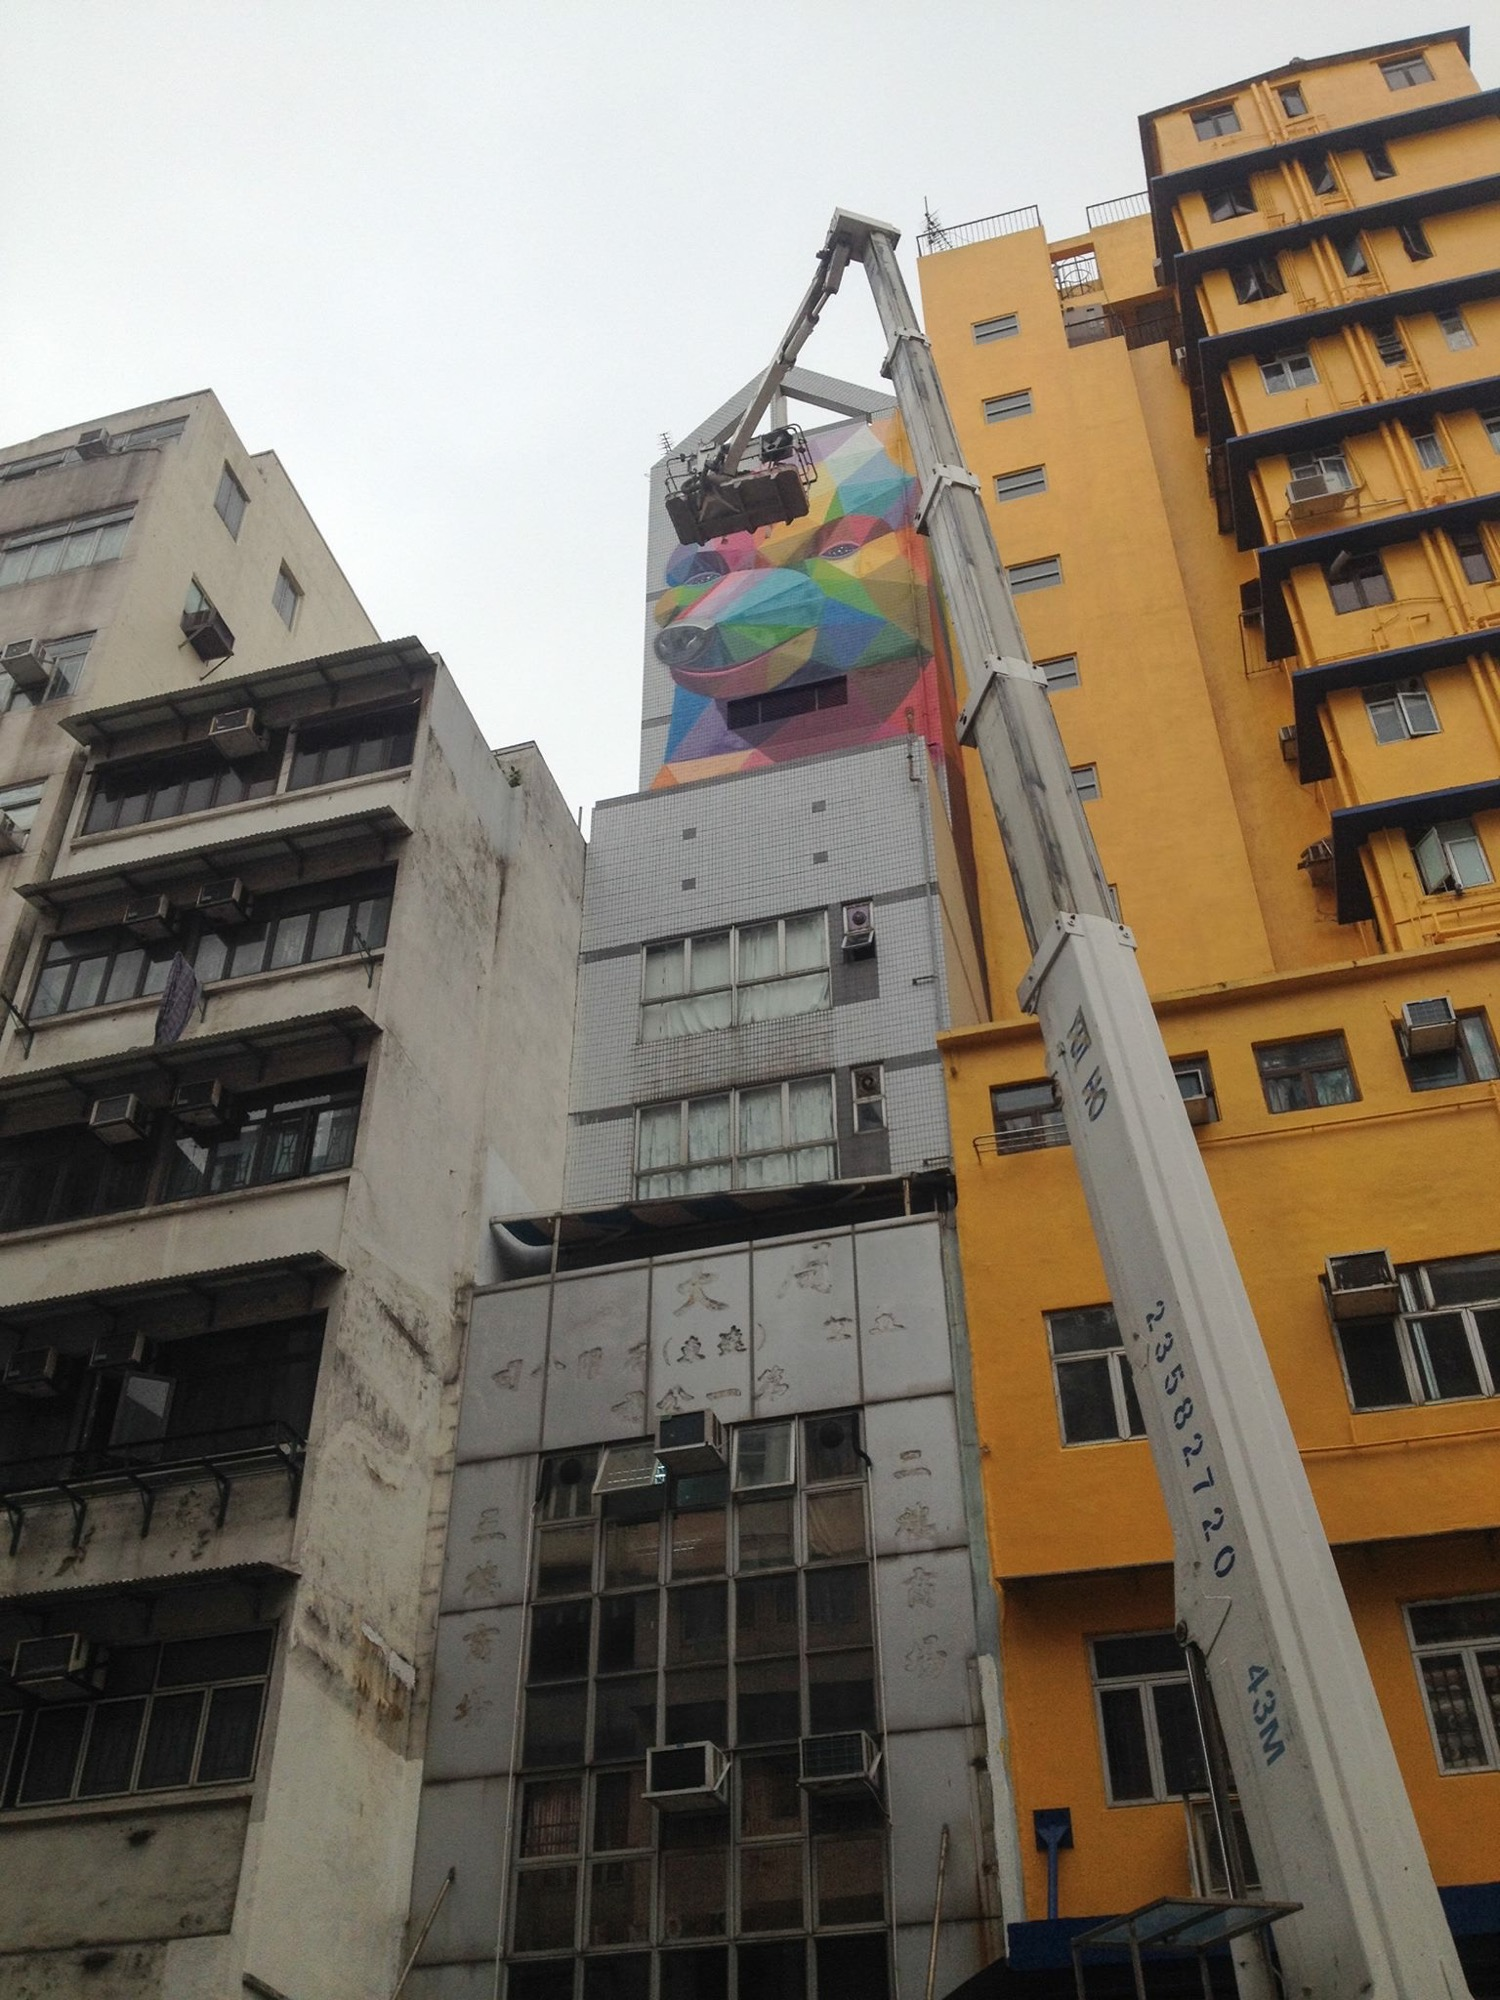 New Mural by Okuda in Hong-Kong - the vandallist (11)